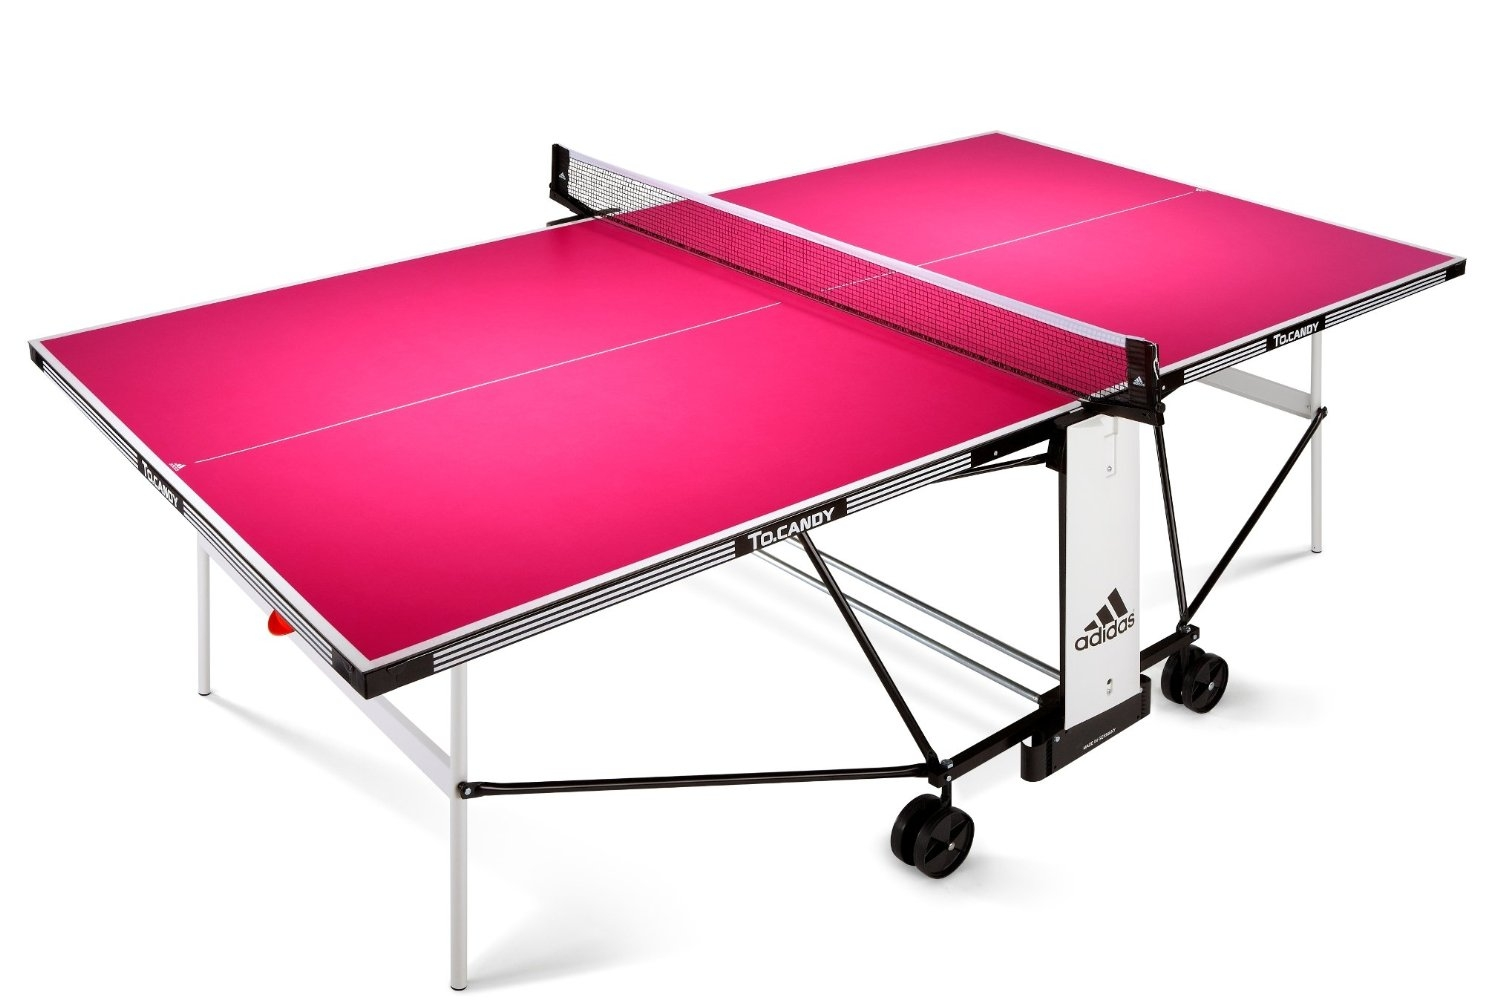 Table de ping pong d 39 ext rieur adidas to candy - Table de ping pong exterieur en solde ...